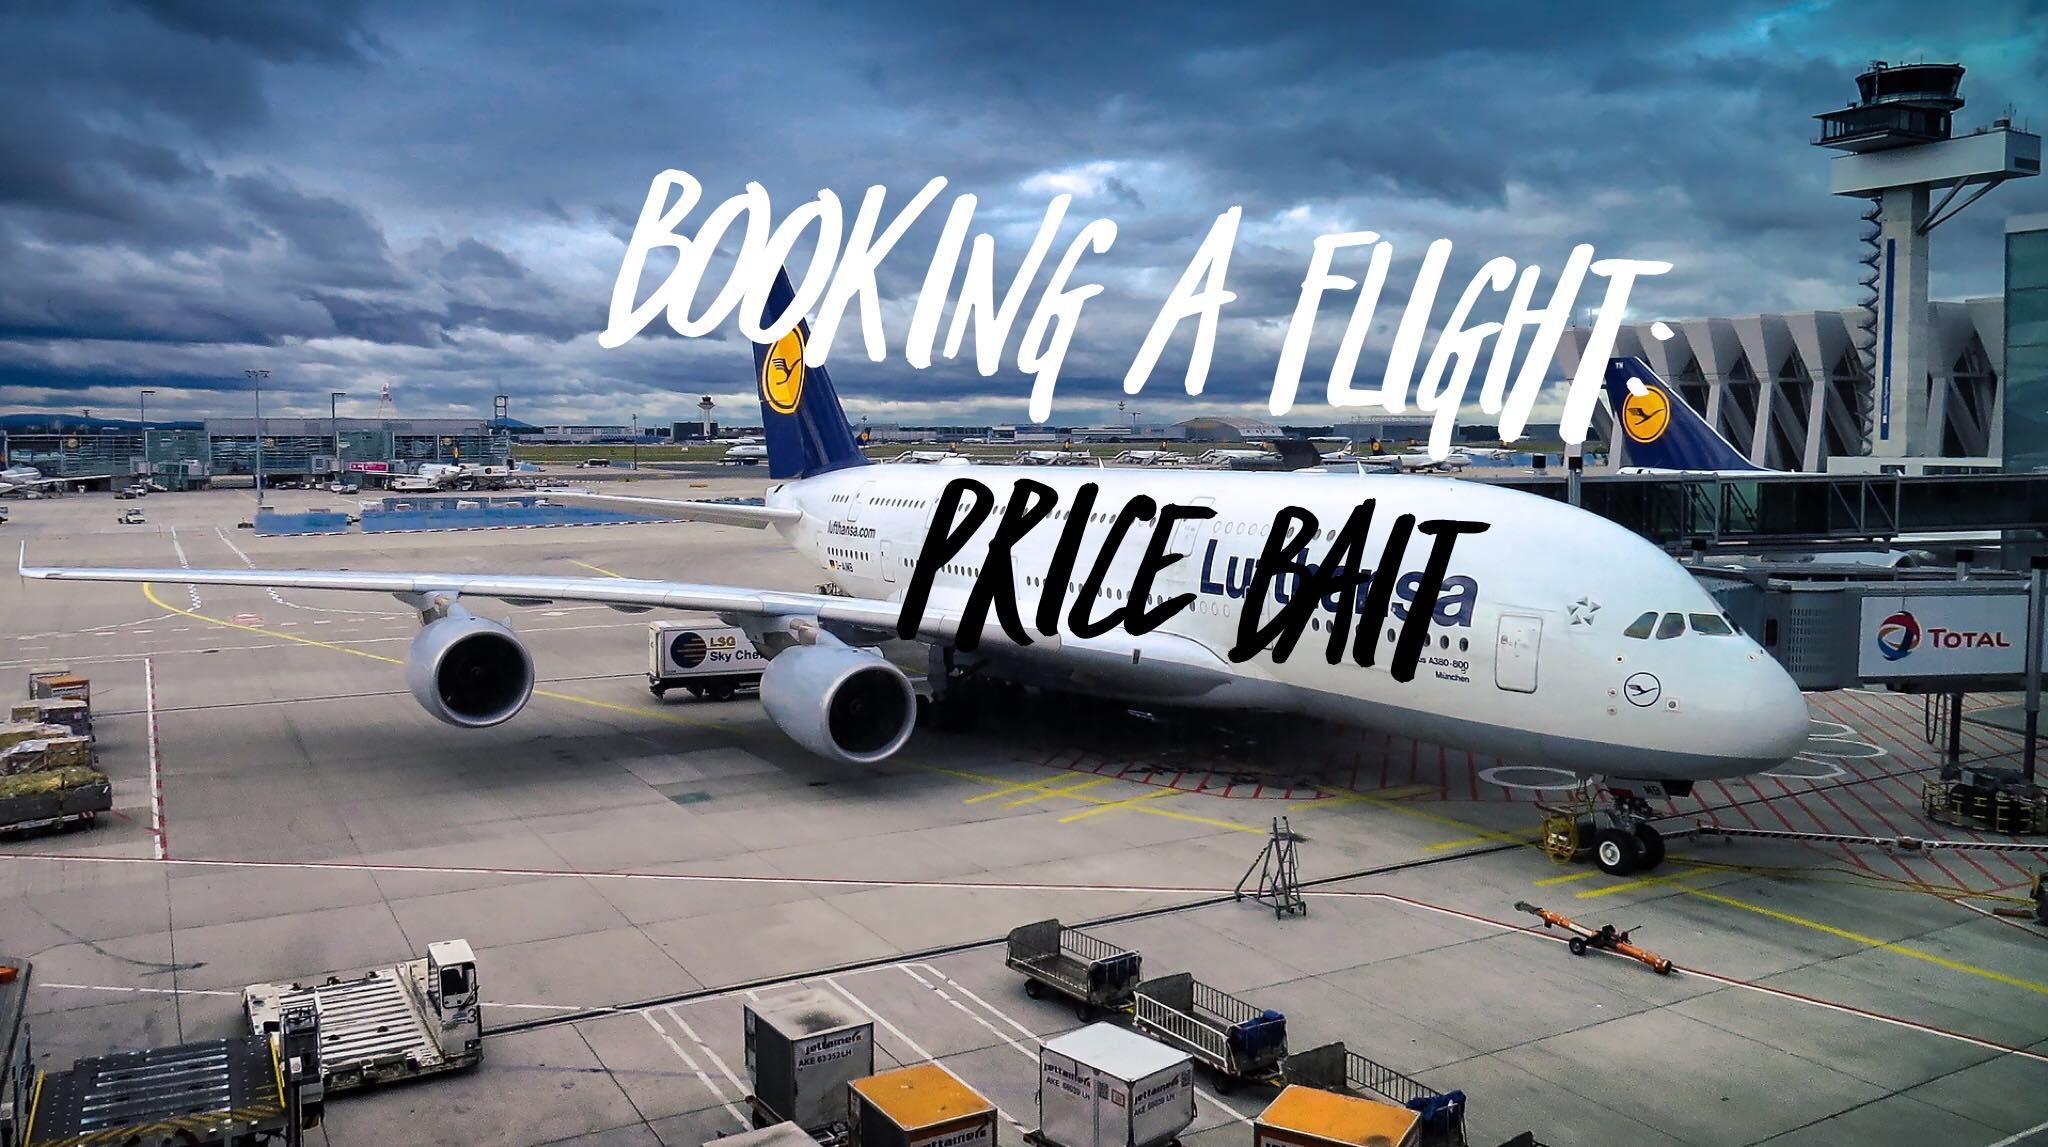 Booking a Flight: Price Bait